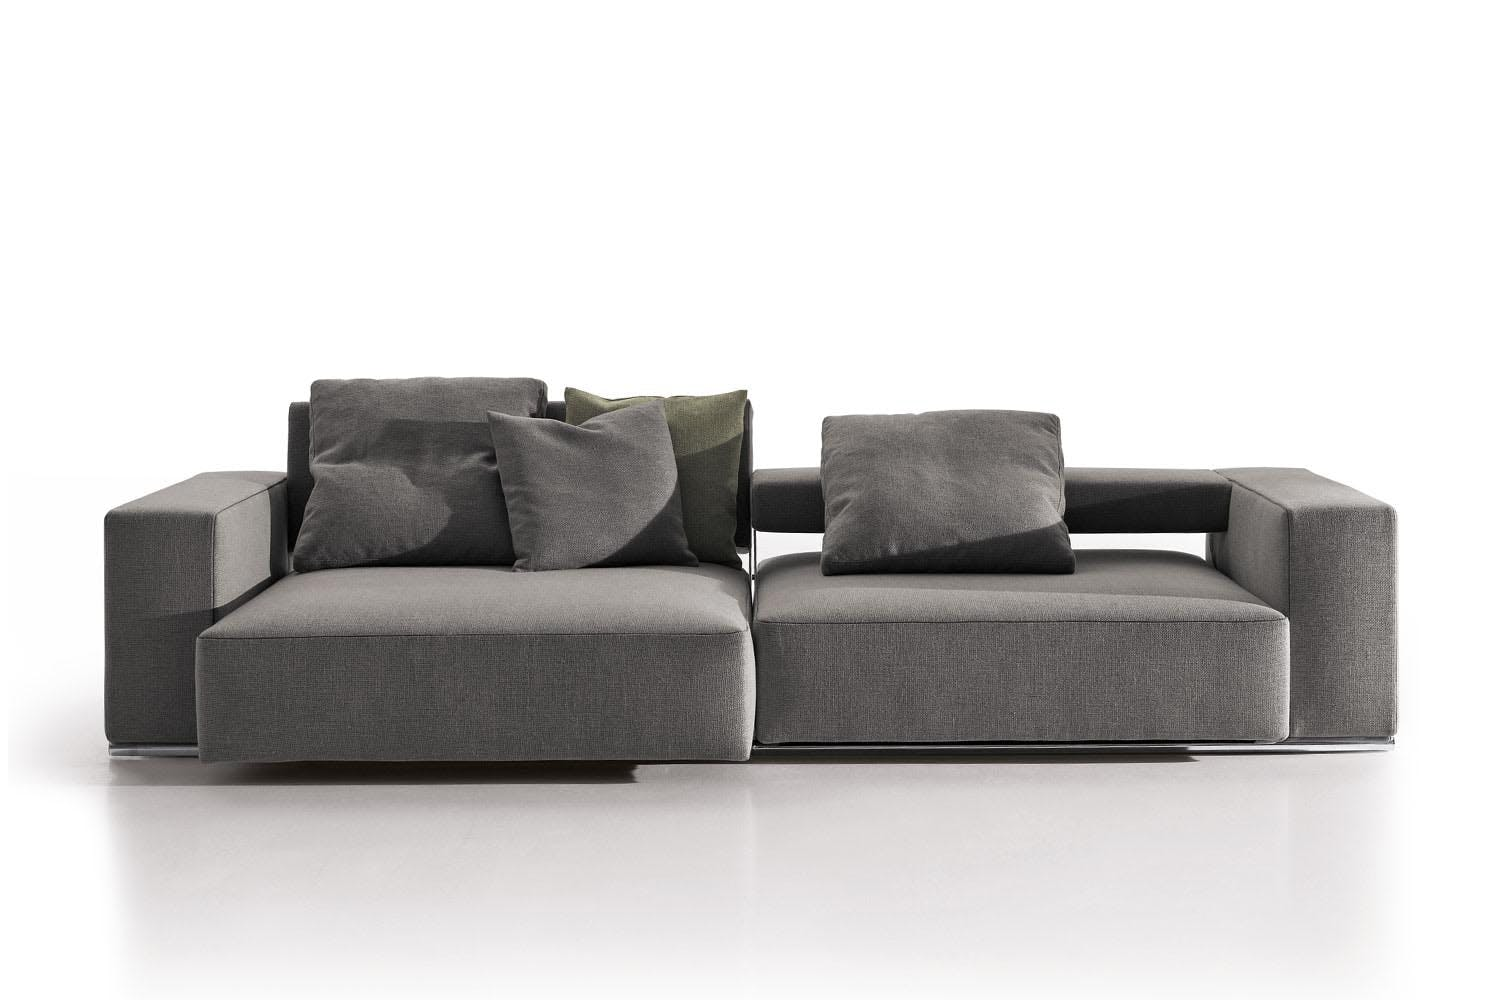 andy 39 13 sofa by paolo piva for b b italia space furniture. Black Bedroom Furniture Sets. Home Design Ideas